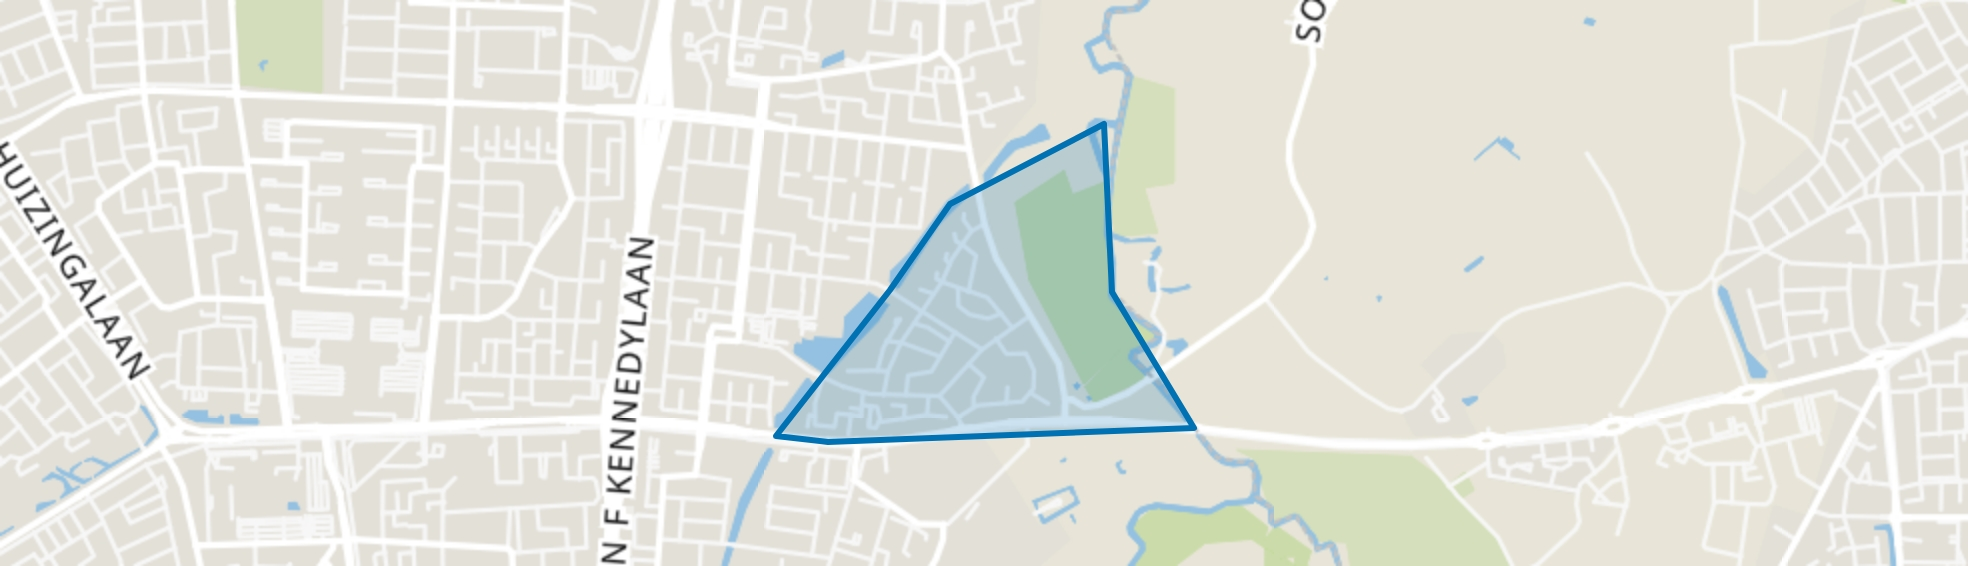 Luytelaer, Eindhoven map